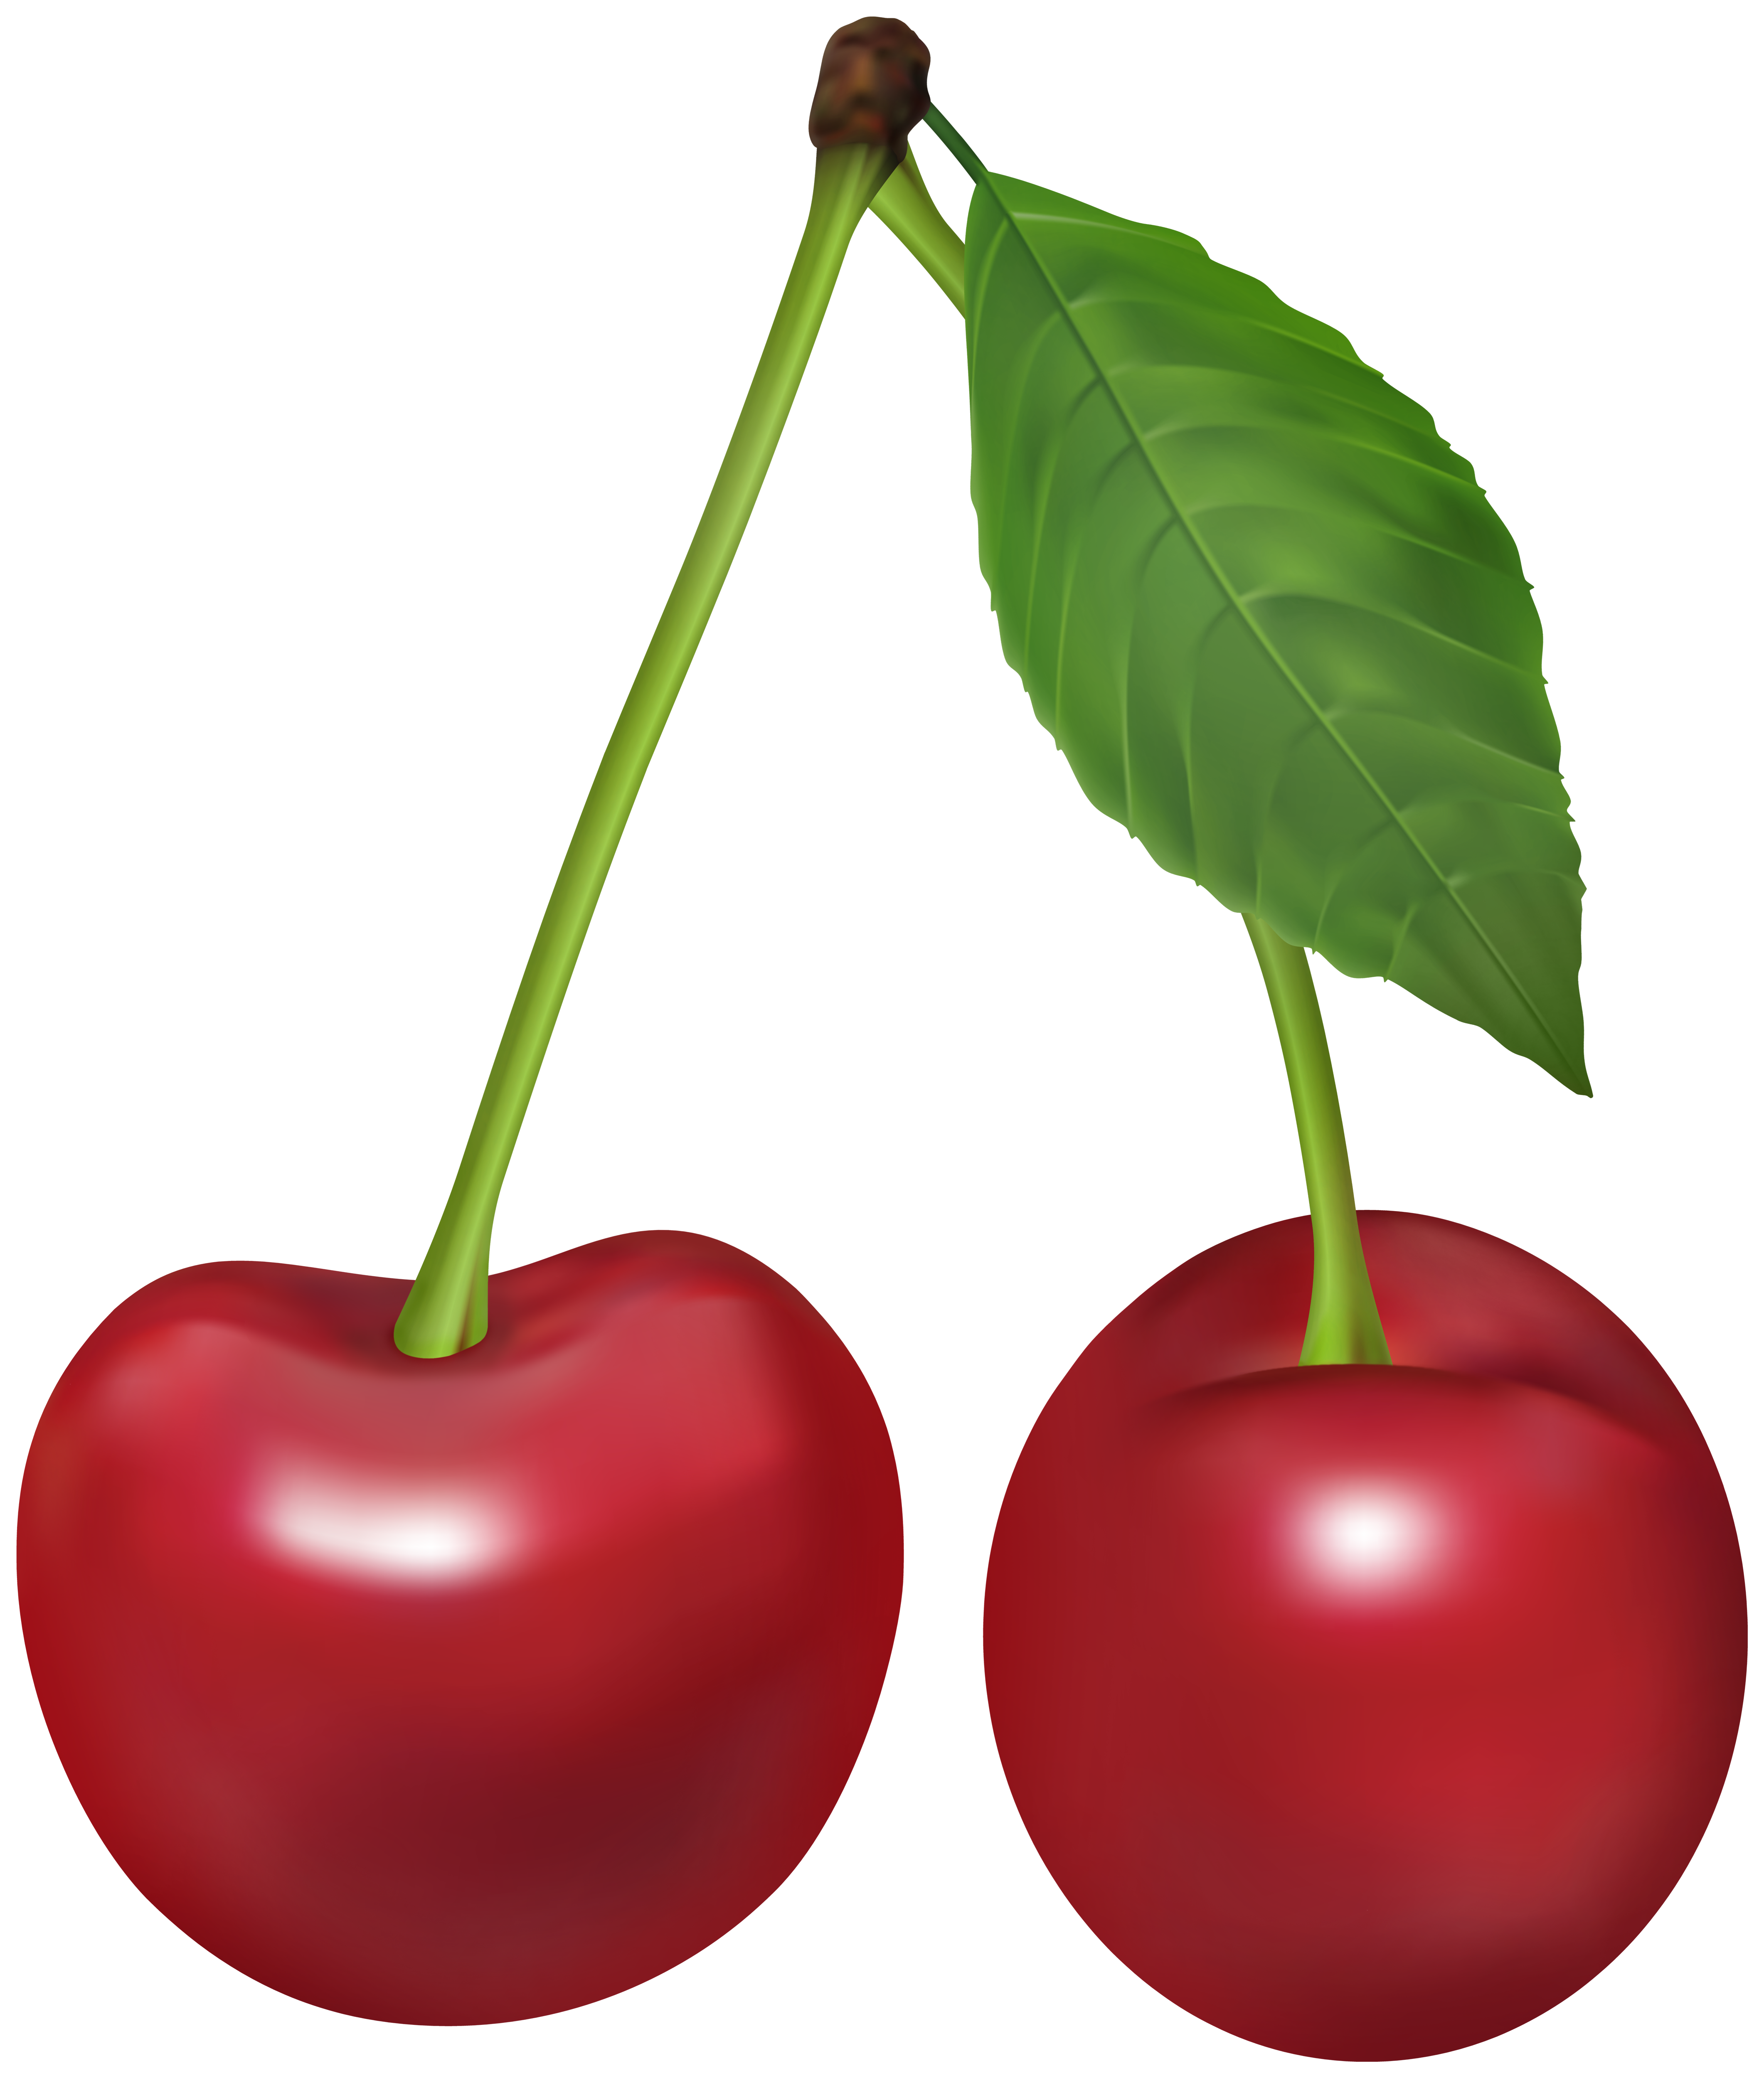 Cherry PNG Clipart Image.